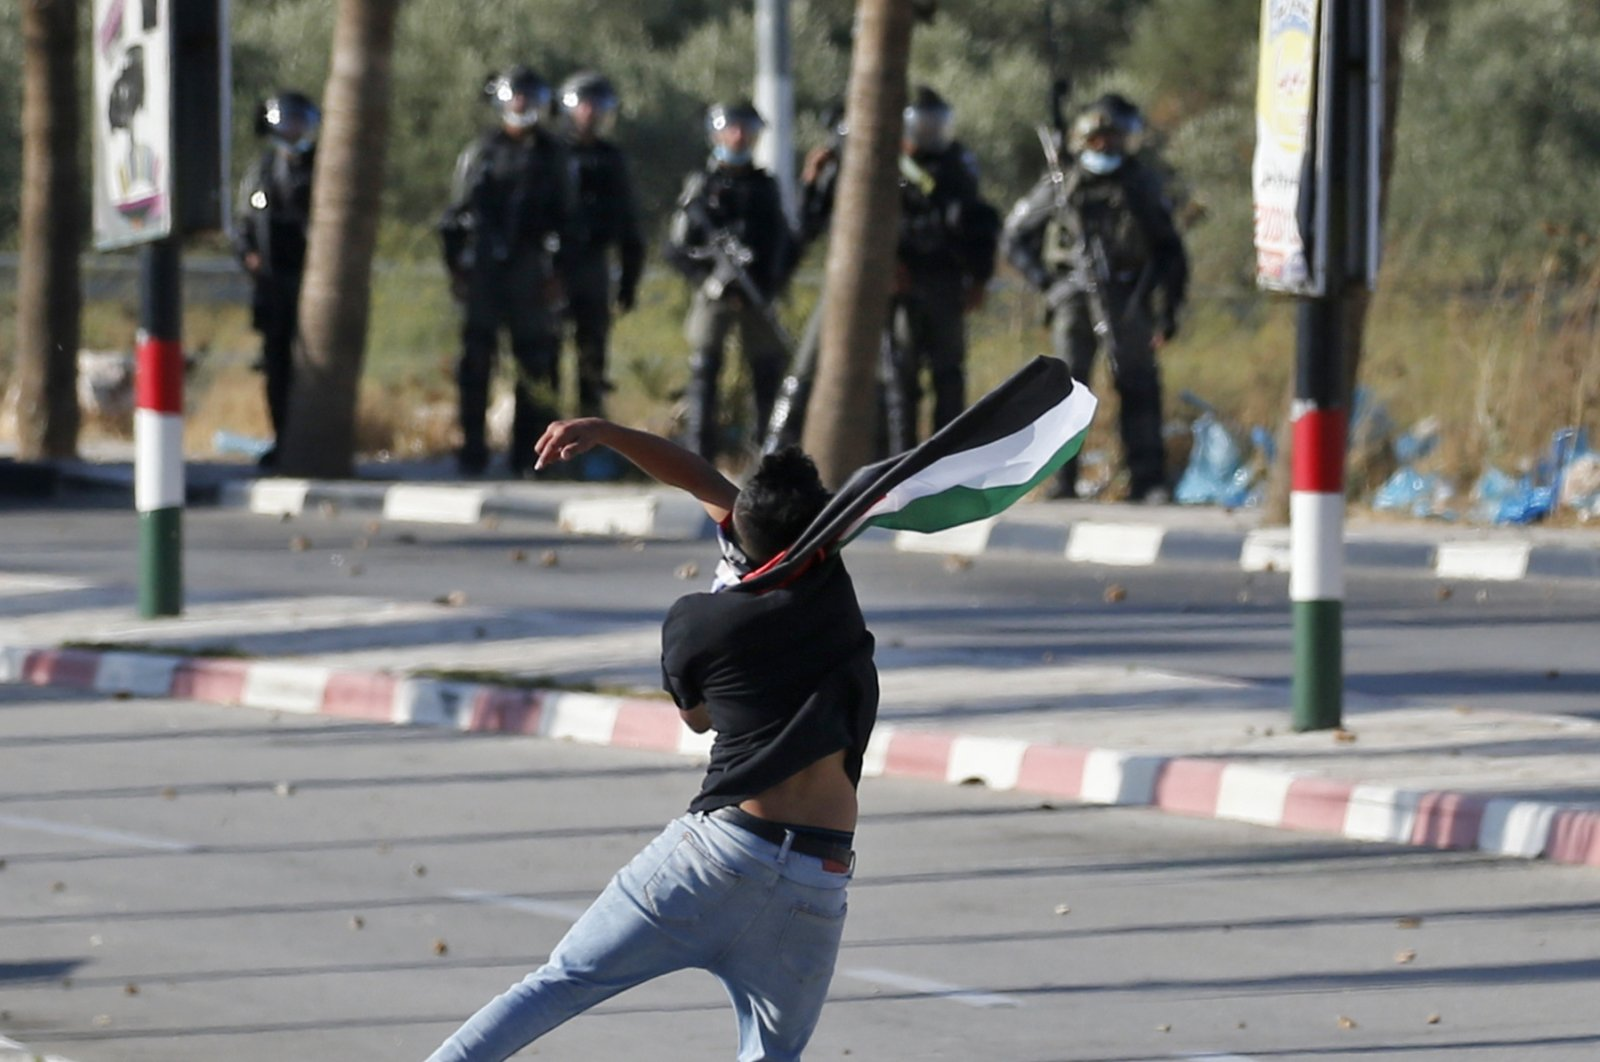 A Palestinian protester hurls stones at Israeli security forces amid clashes following a demonstration against the United Arab Emirates' decision to normalize ties with Israel, in the village of Turmus Aya near the occupied West Bank city of Ramallah, August 19, 2020. (AFP Photo)